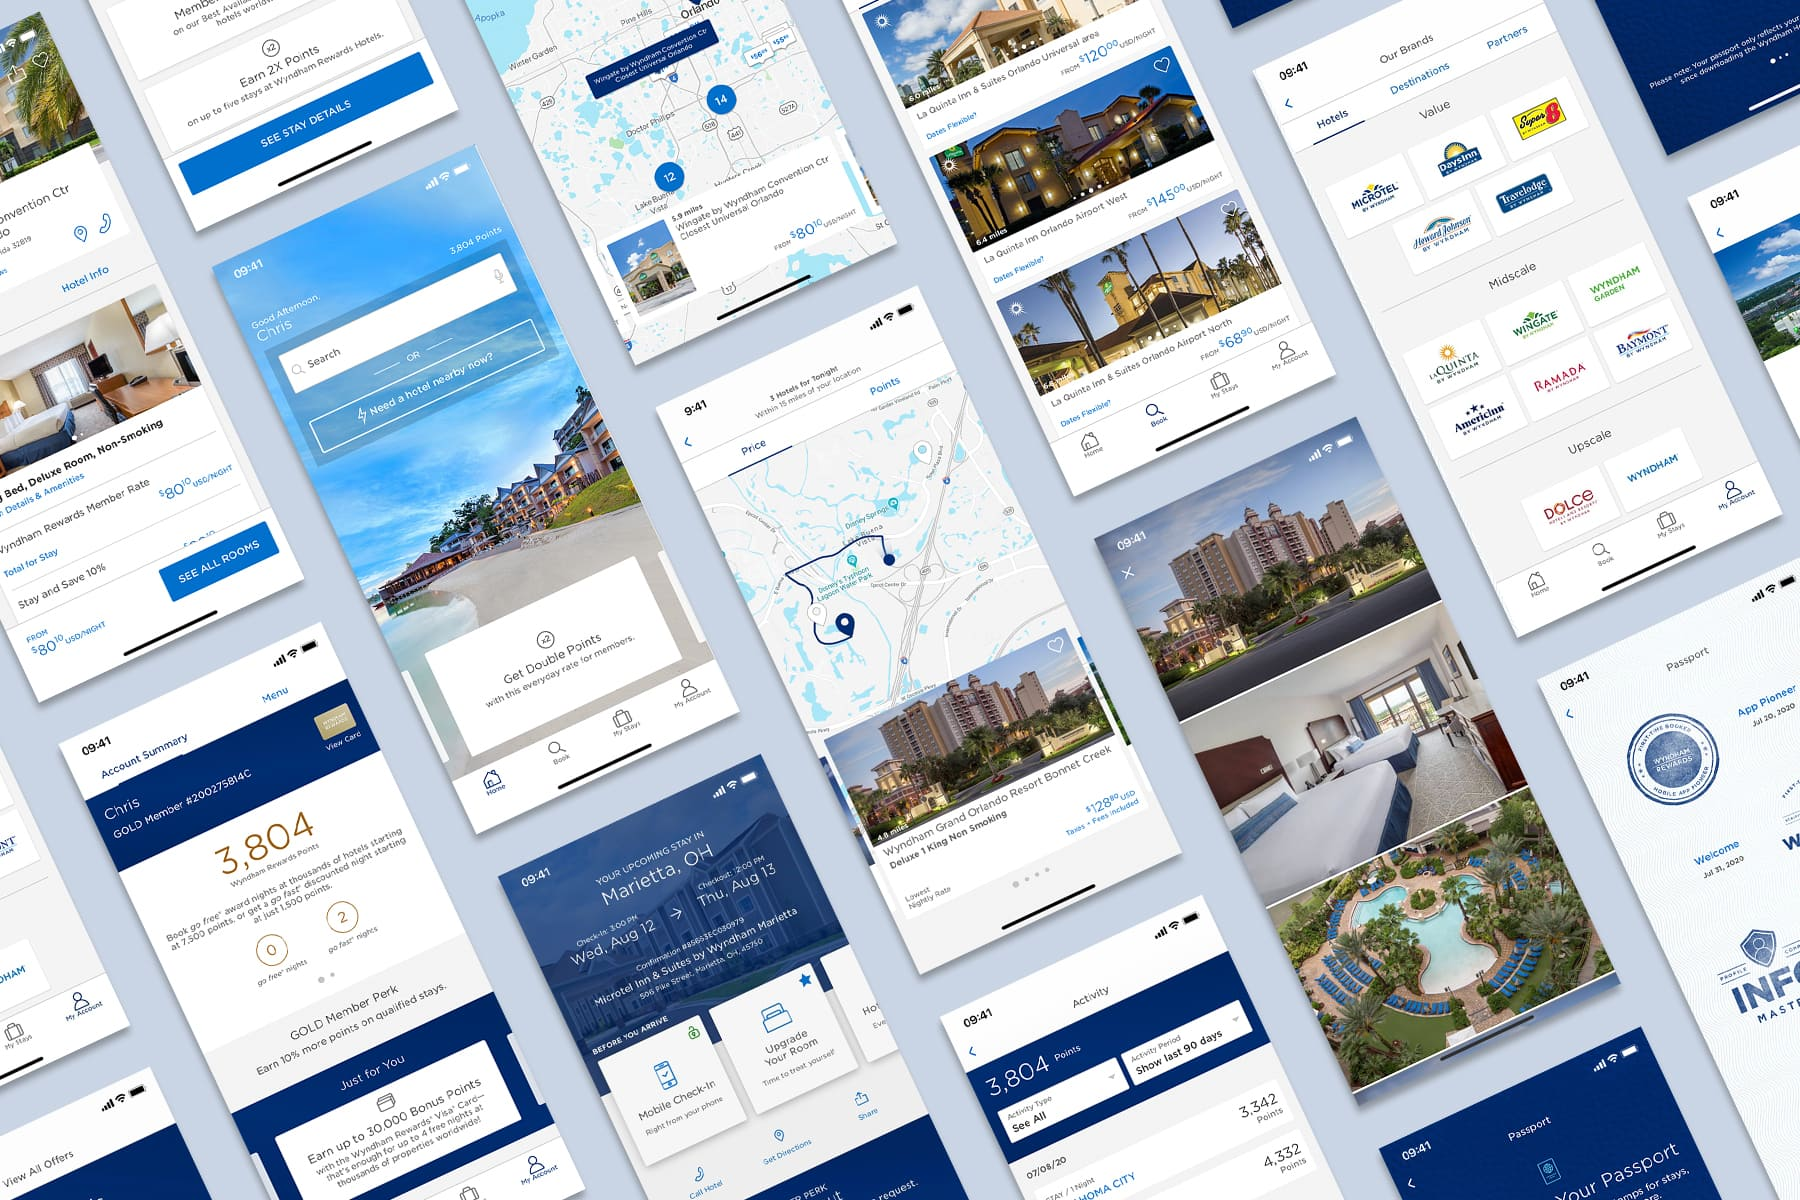 Wyndham Hotels and Resorts - Mobile App